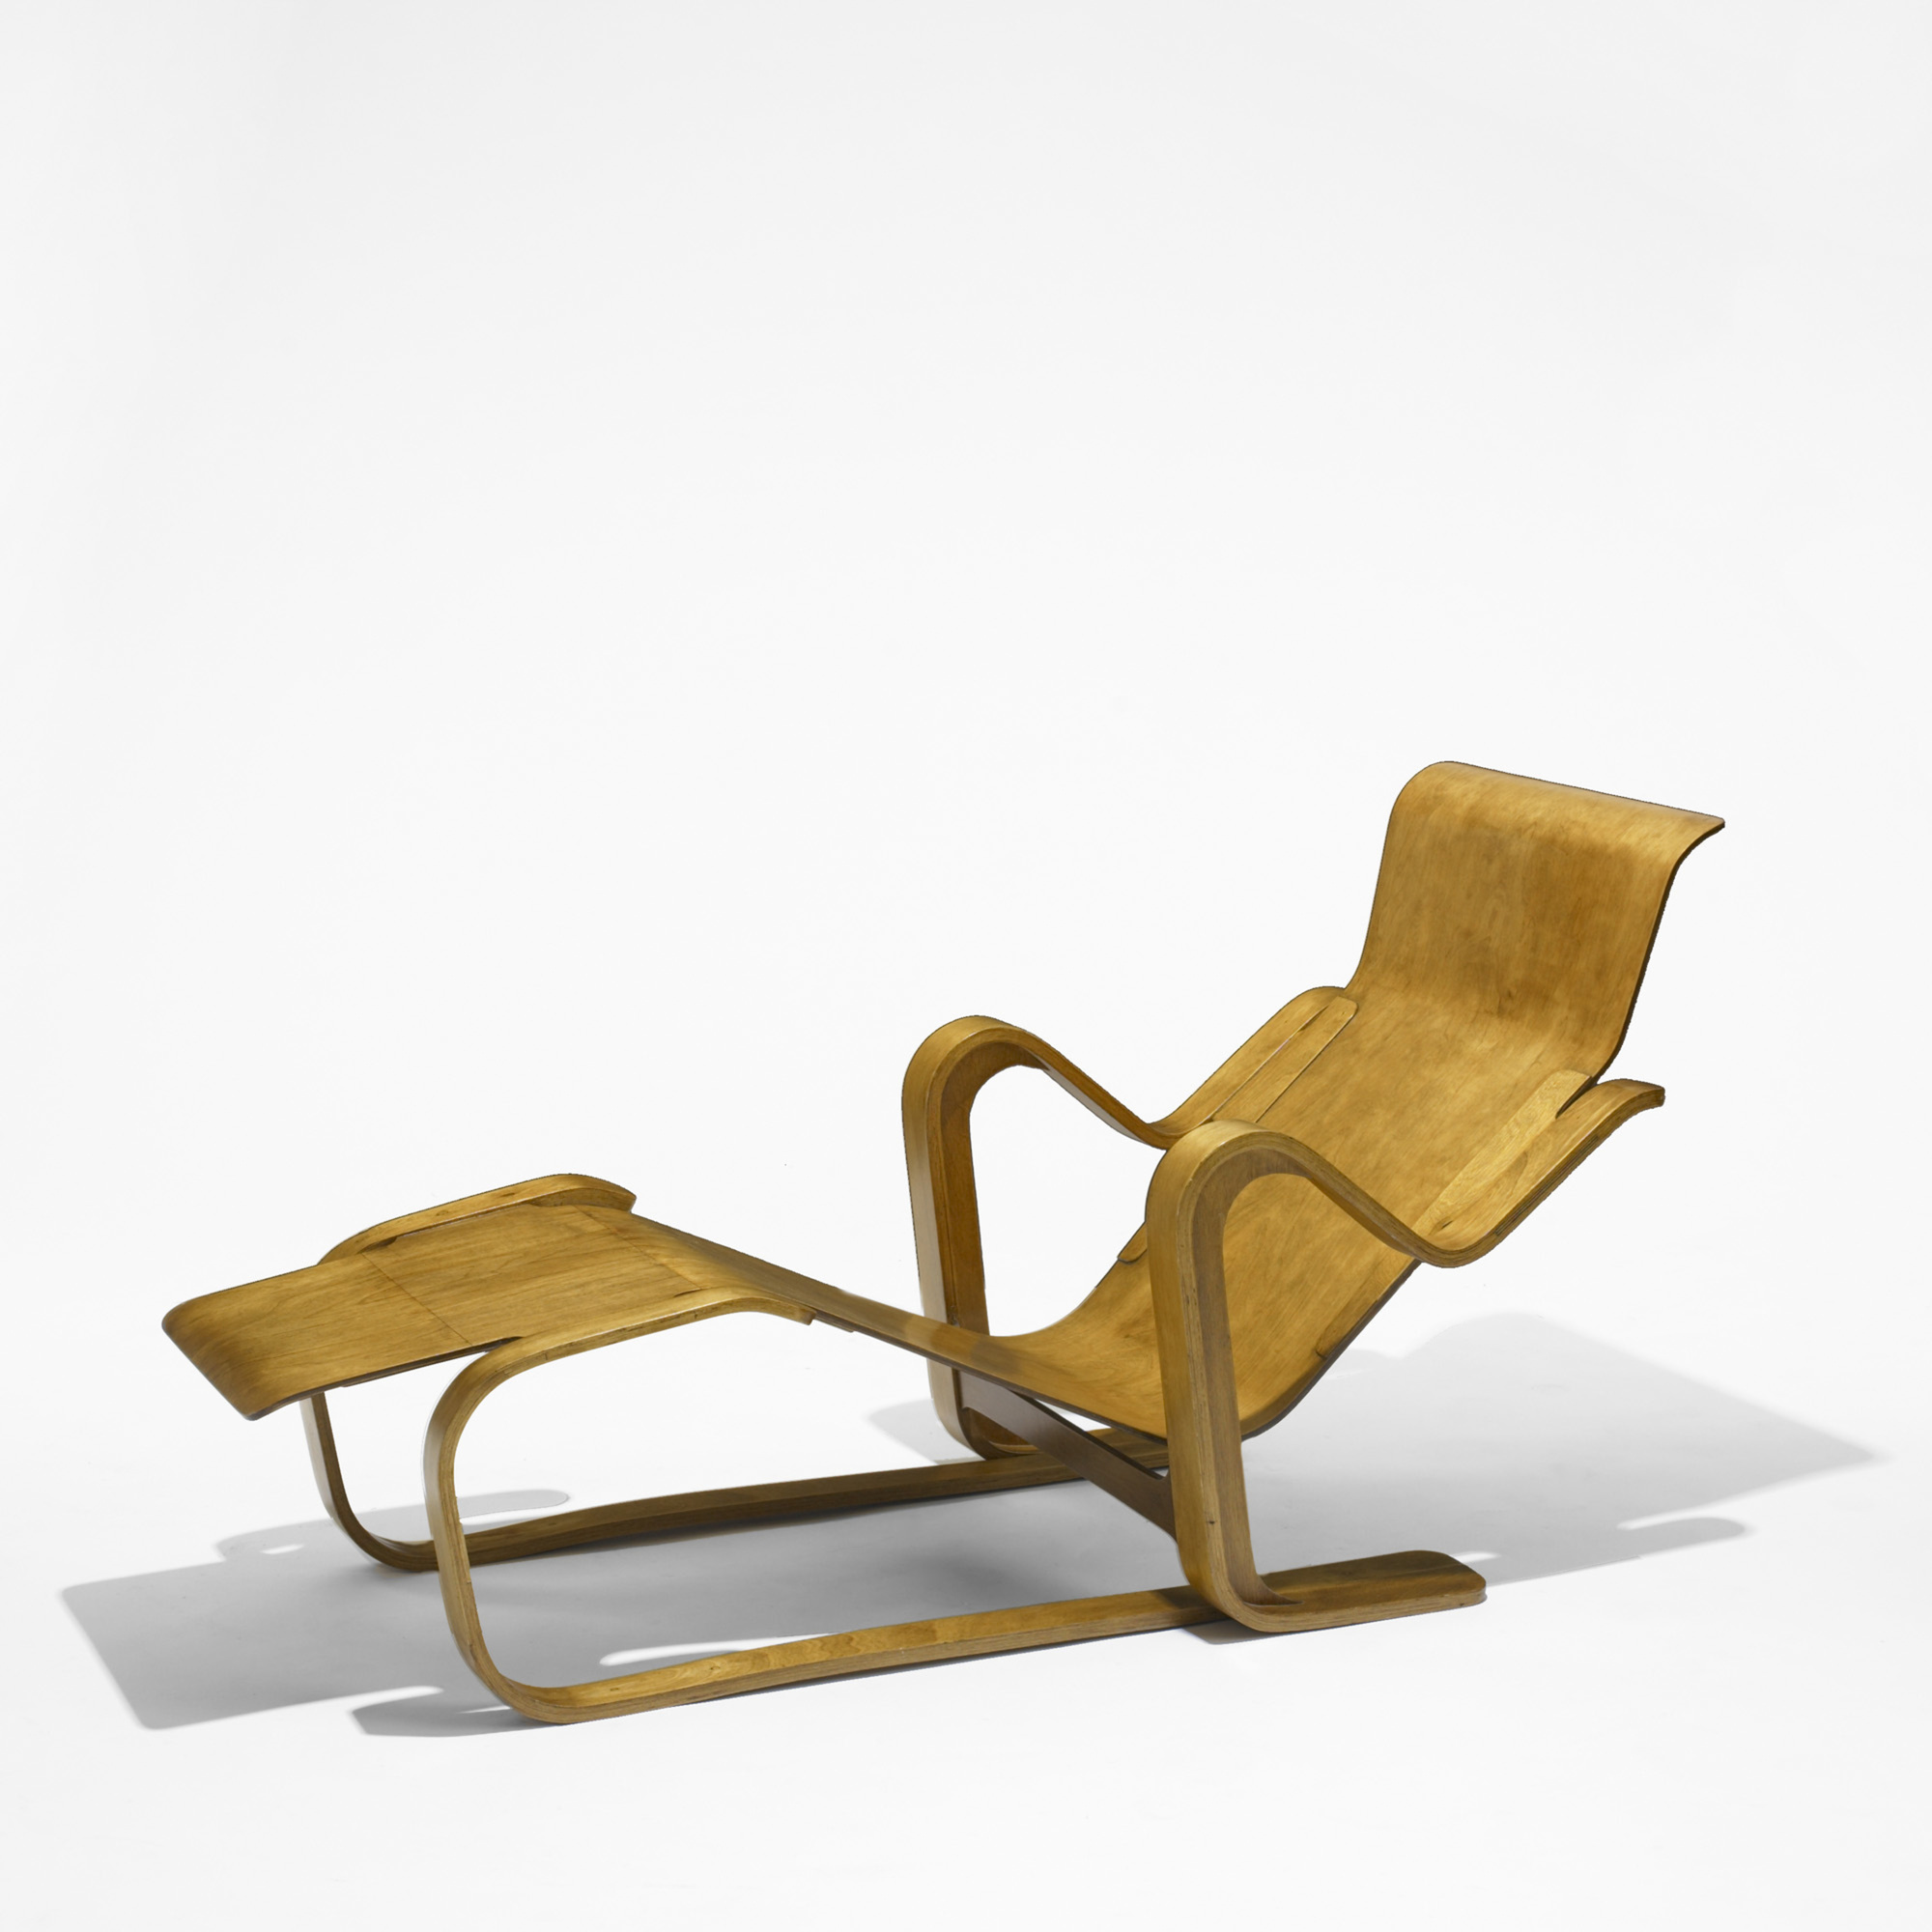 501 Marcel Breuer Long Chair Important Design 8 June 2010 Auctions Wright Auctions Of Art And Design